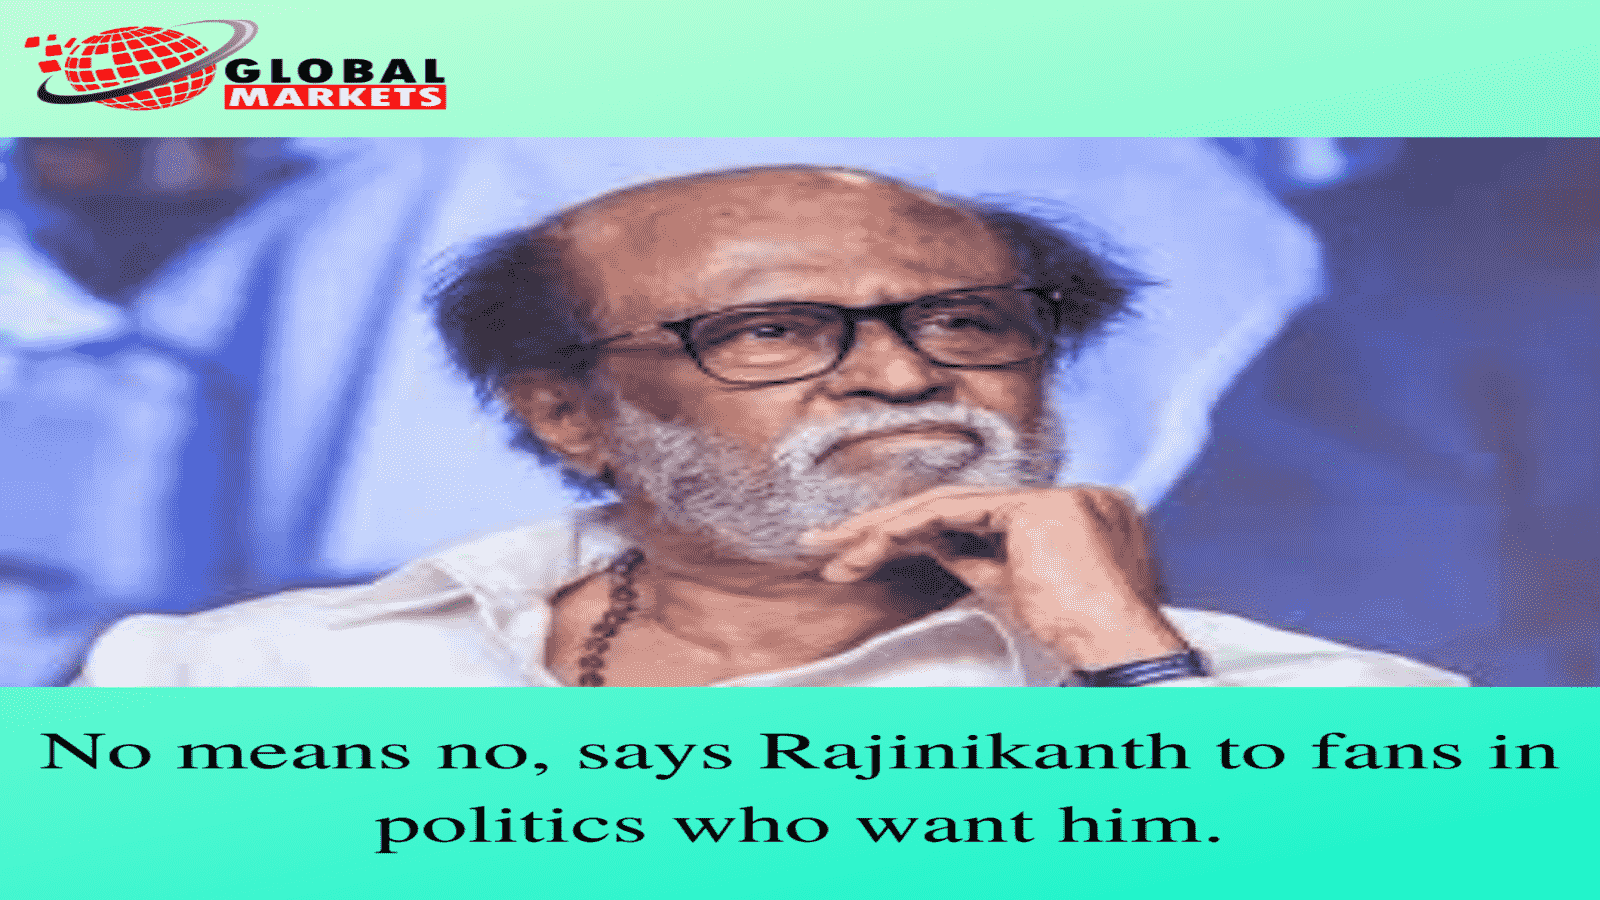 No means no, says Rajinikanth to fans in politics who want him.